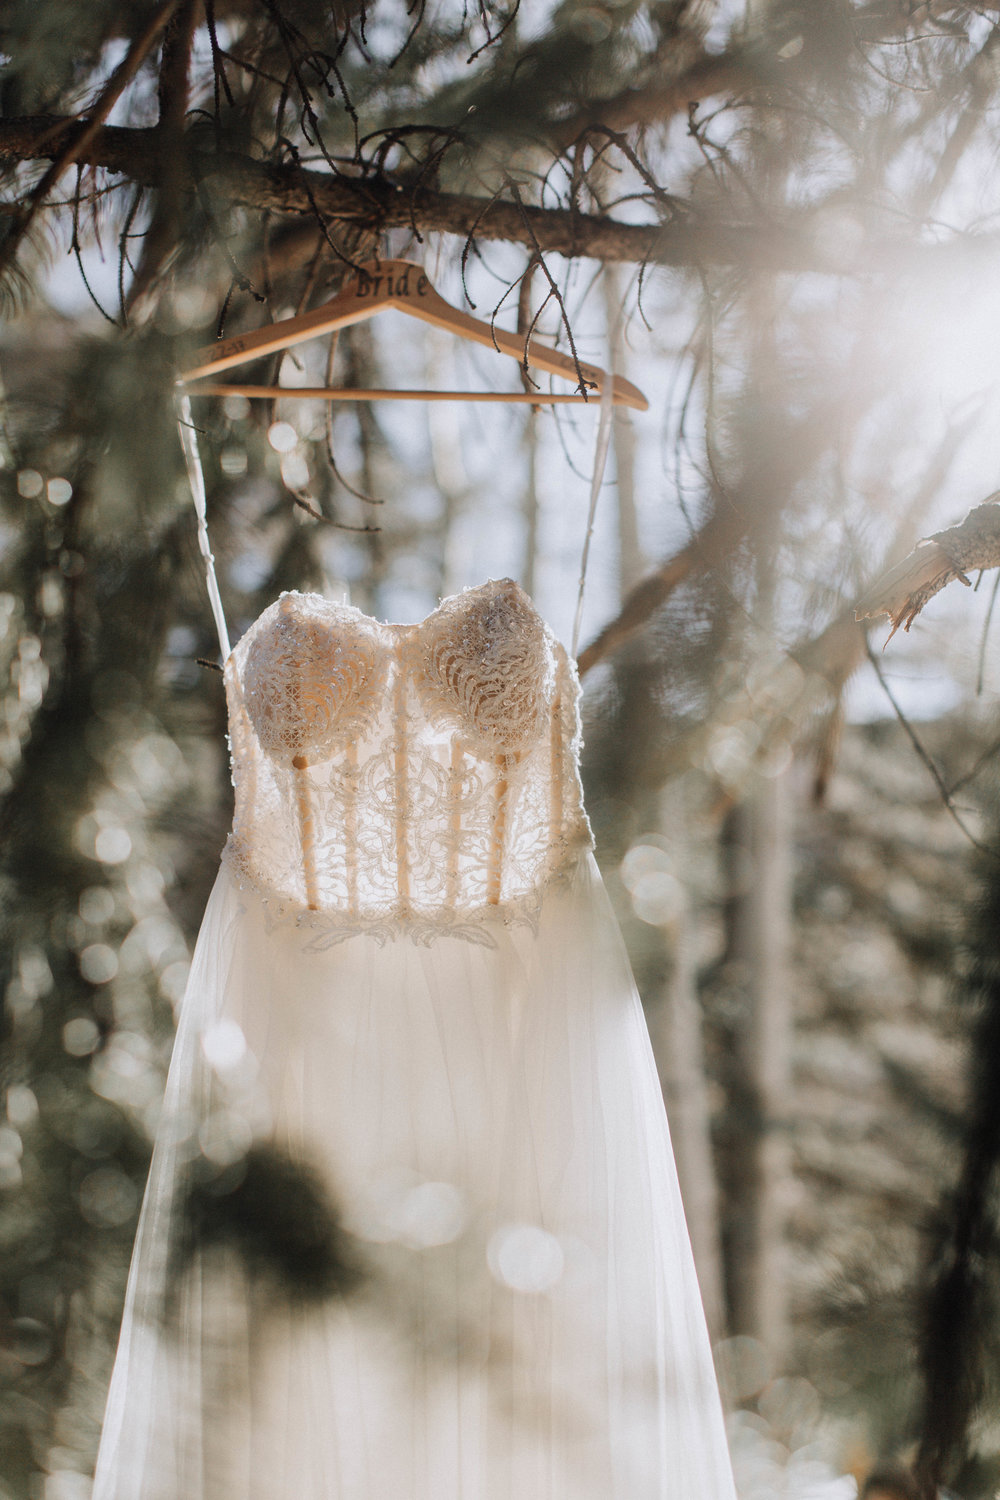 THE DRESS - Obviously the dress is a staple to your wedding day.I have a few tips about your wedding dress that will hopefully make your wedding day a little easier!First and foremost, I hate to break it to you,but your dress will get dirty. It's inevitable. Especially if you plan on having an outdoor ceremony and/or reception. Obviously, I'm not going to make you jump into a puddle of mud (unless you want to?), but do keep this in mind so you don't end up stressing out about it on your wedding day! Trust me, the sooner you accept it, the easier it will be to deal with when that time comes.STRAPLESS DRESSESStrapless dresses are gorgeous, but they do come with a price to pay. Every bride I've had who wore a strapless dress ended up spending the whole day having to adjust herself, by lifting up the dress and repositioning her ladies. And when it comes time to dance, all bets are off. If a strapless dress is your dream dress, get it! But just be prepared with some fabric tape or a trusty strapless bra to wear underneath to avoid any accidents! Overall, consider a dress you'll be comfortable to walk in.SHOESIf your feet aren't going to show, don't be afraid to wear something comfy underneath! I've seen brides wear boots, sneakers, and flip flops under their wedding dress. Definitely take this into consideration if you plan on having an outdoor ceremony, because stilettos aren't very functional when walking in the grass!